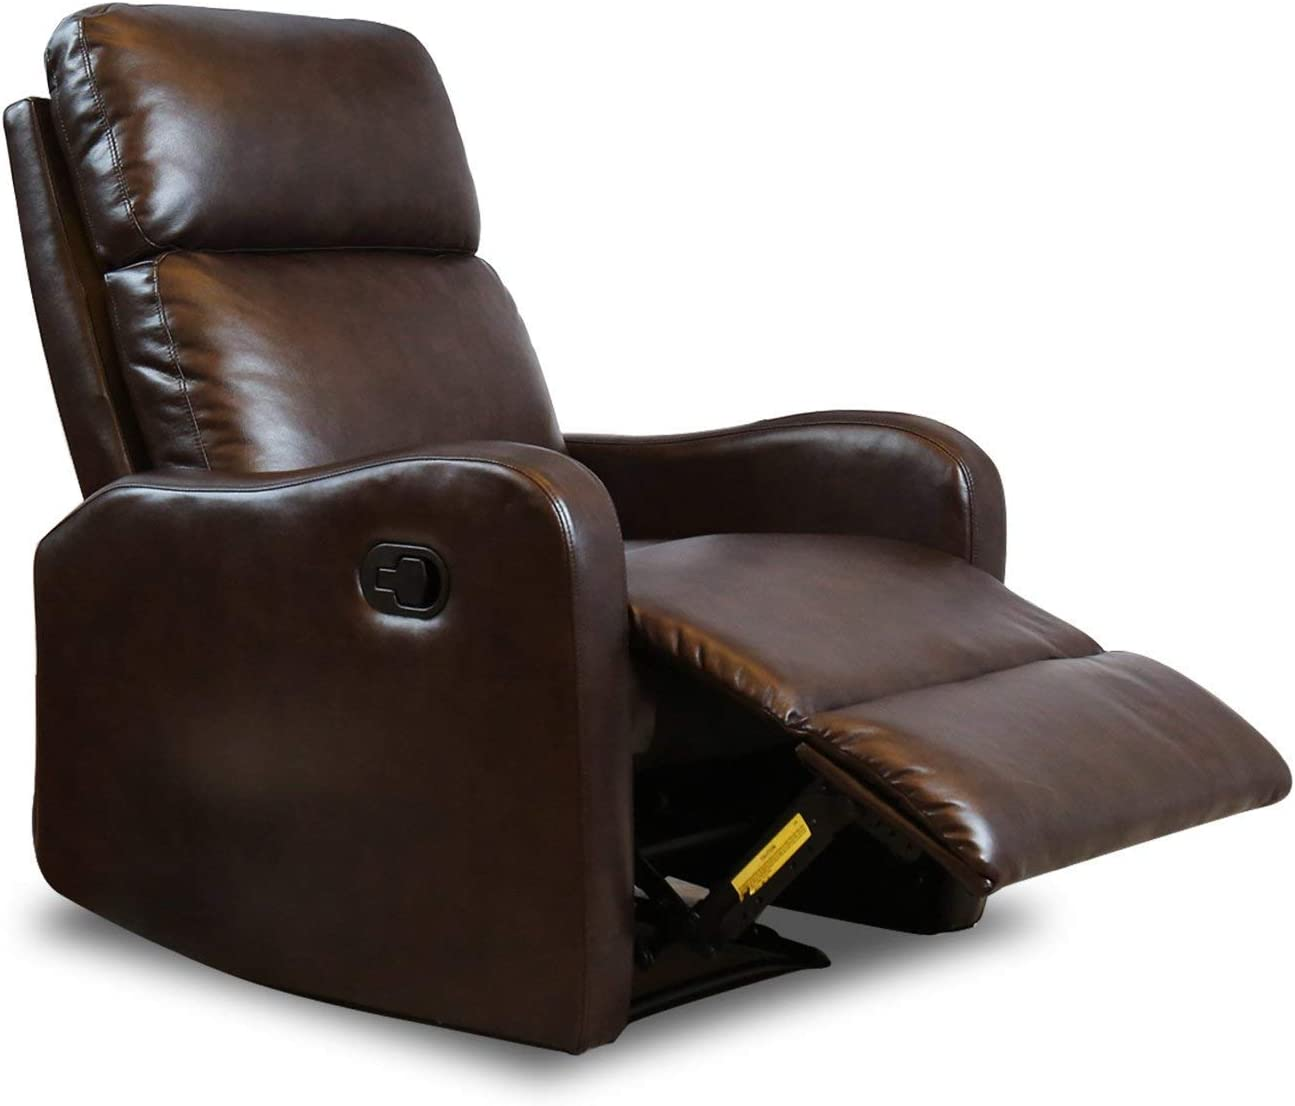 Bonzy Recliner Chair Contemporary Leather Recliner for Modern Living Room Chocolate